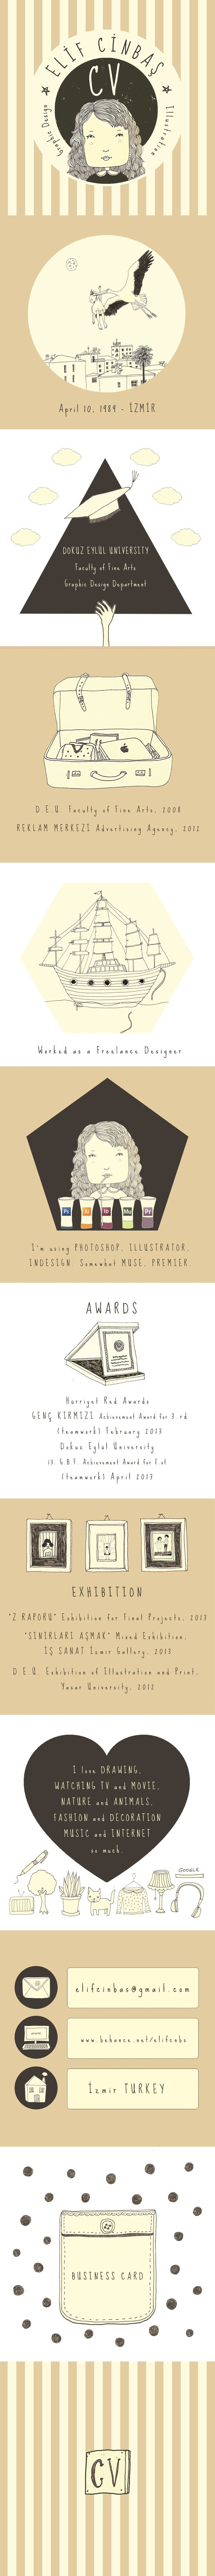 17 best ideas about my cv creative cv design illustrations of my cv design by elif cinbaş via behance